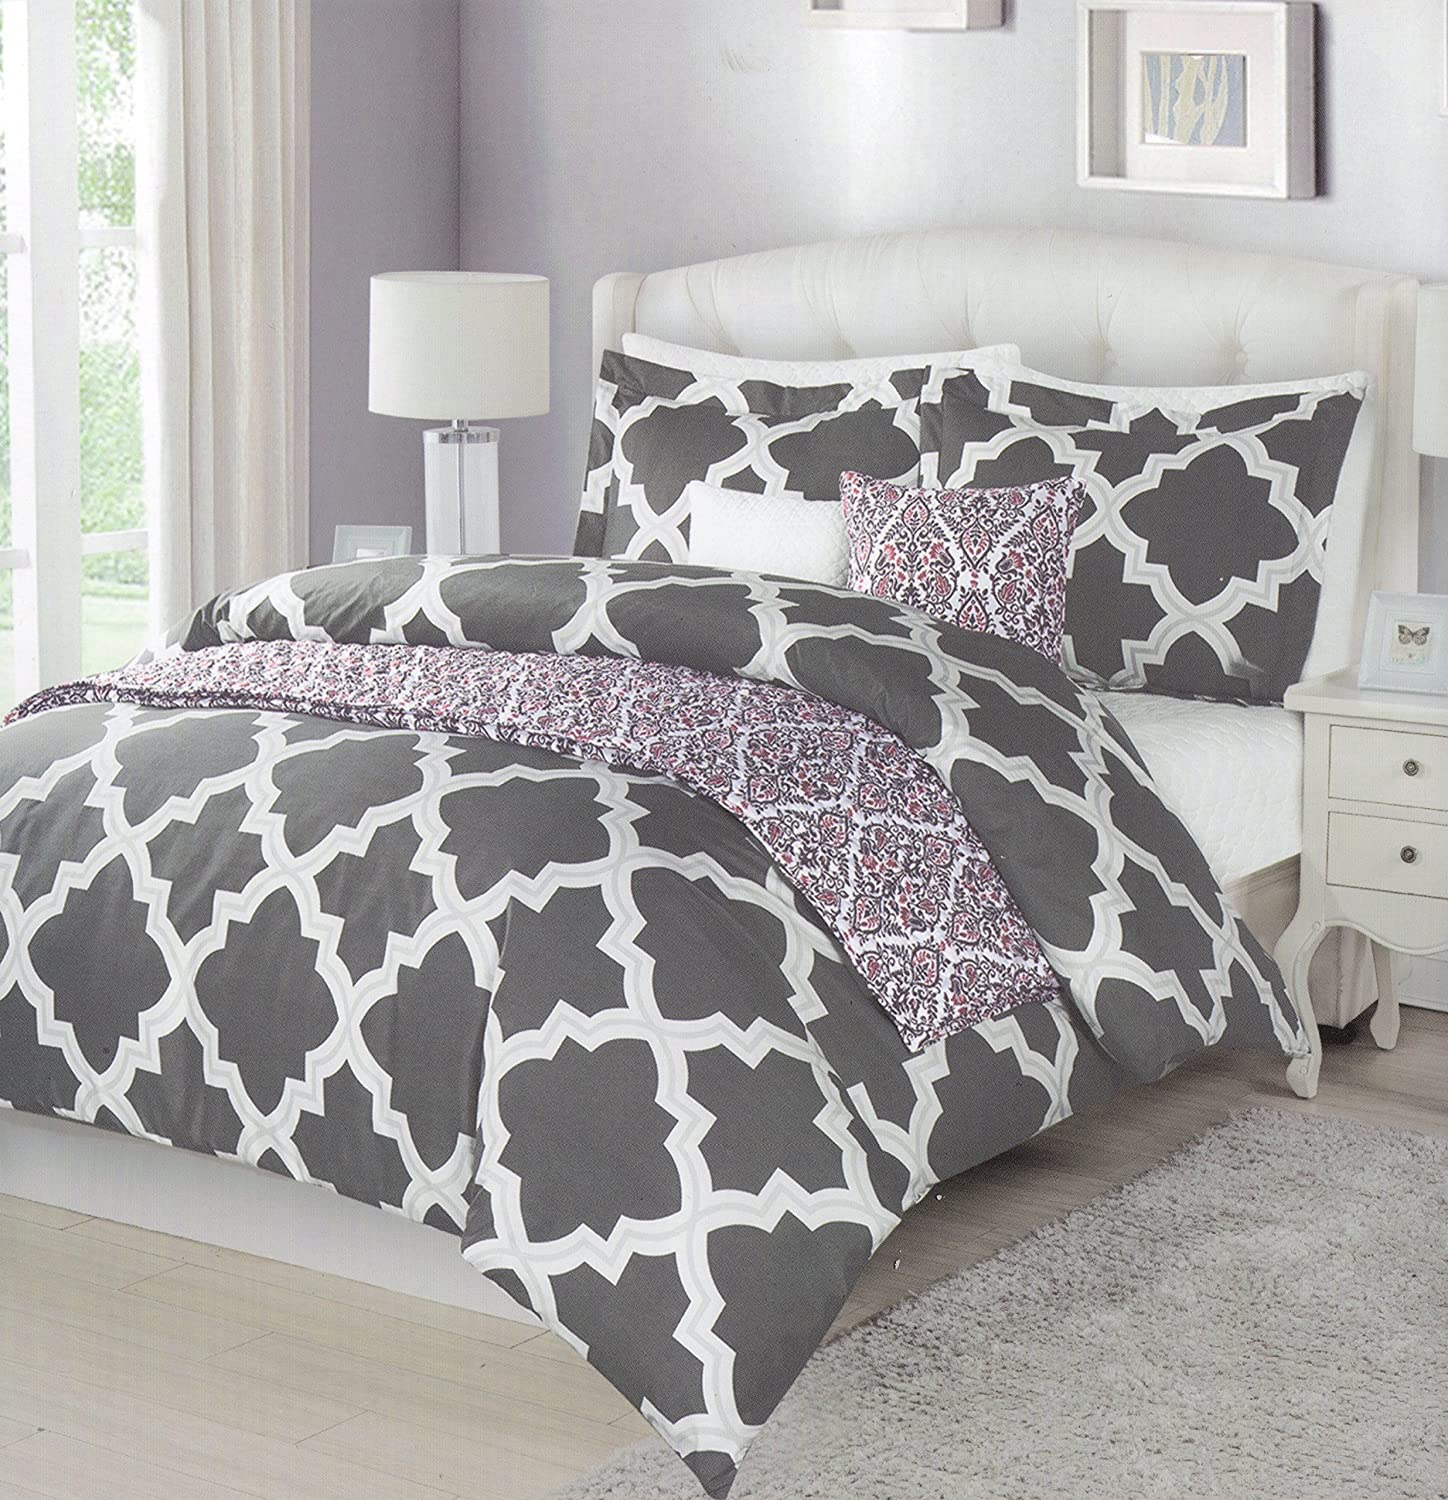 com find alibaba covers duvet aqua line silver teal set pascal cover guides get home deals medallion on moroccan turquoise shopping tahari boho at aquarelle quotations paisley cheap grey